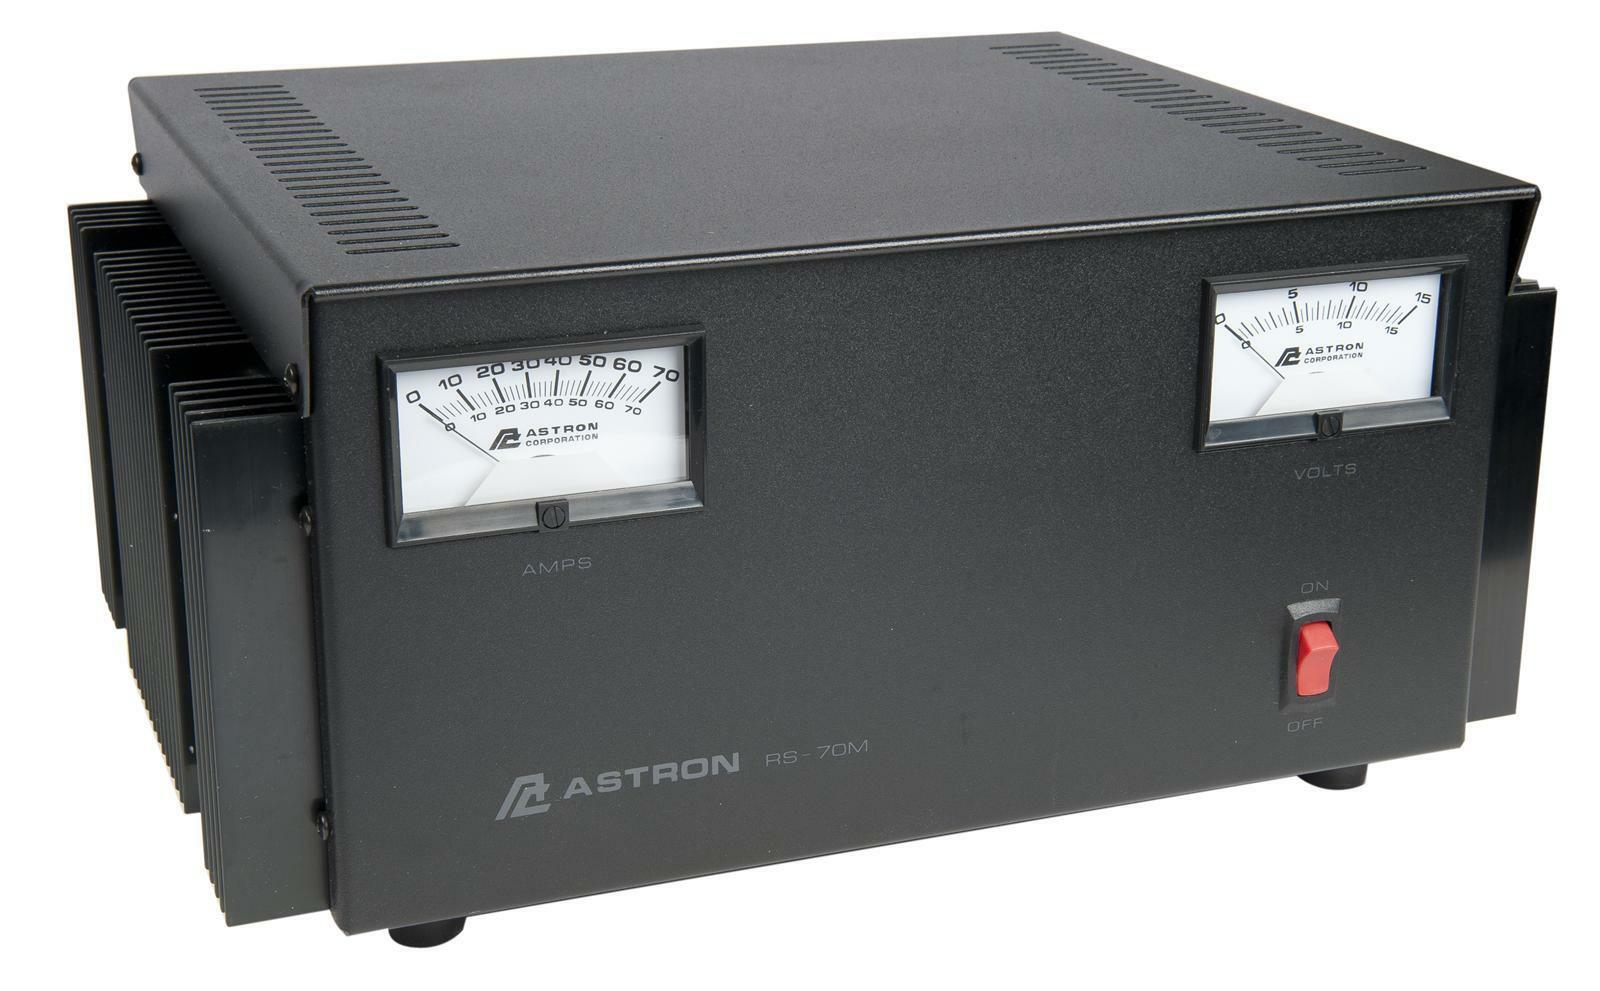 ASTRON POWER SUPPLY RS-70M-AP (latest model) 13.8VDC 70A. BRAND NEW W/ WARRANTY. Buy it now for 339.95